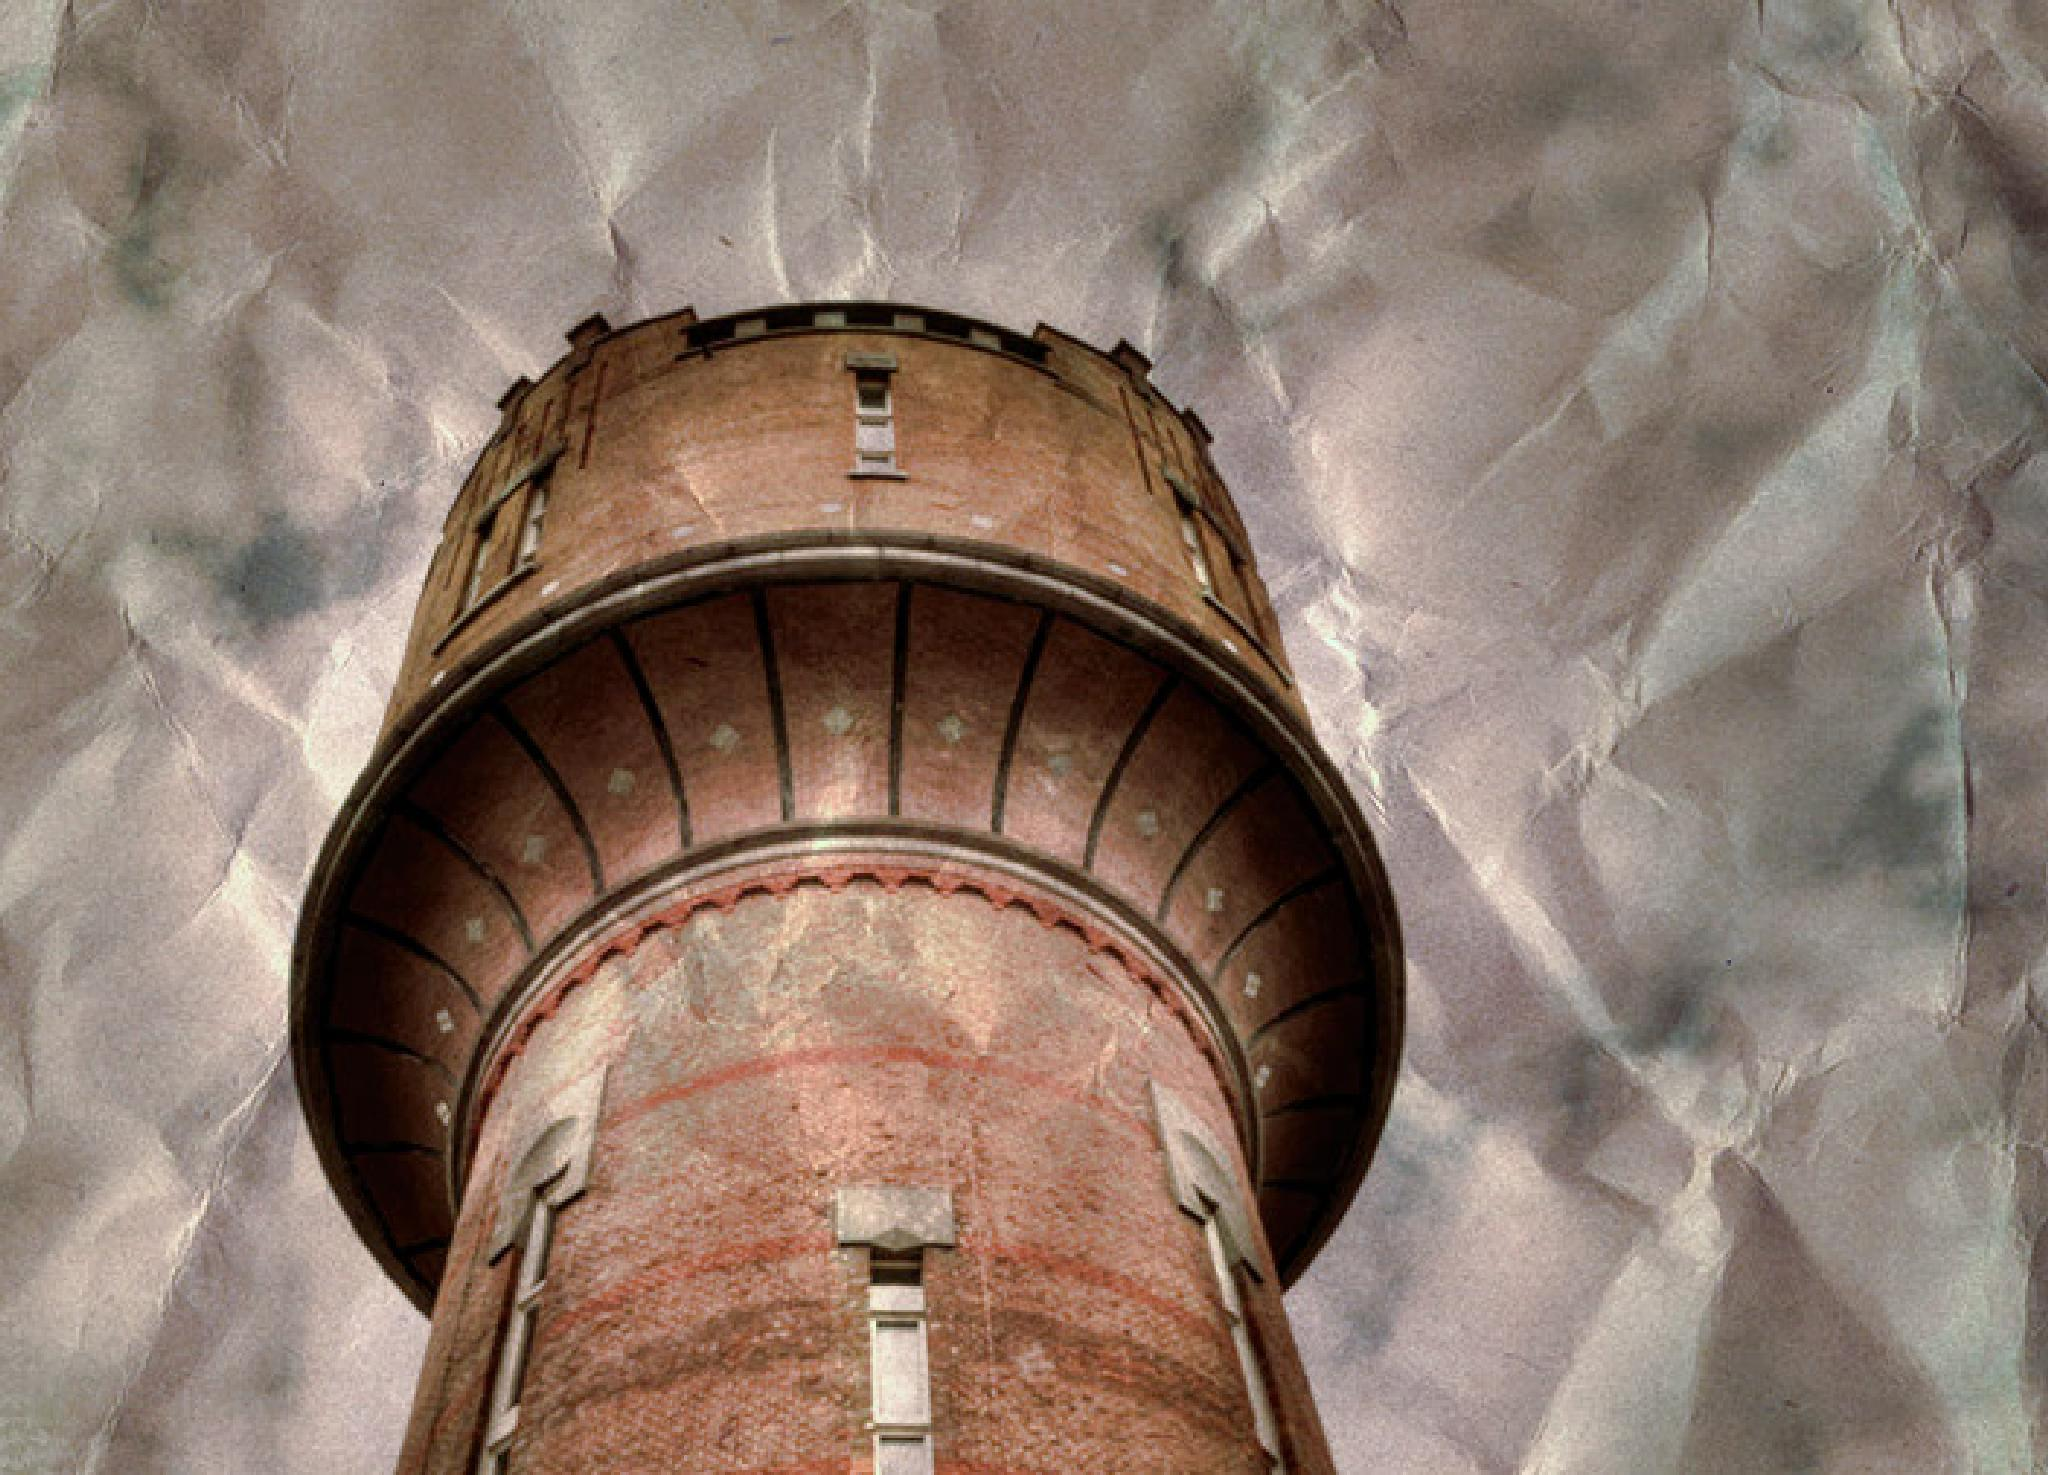 Watertower on paper by damian1997dj